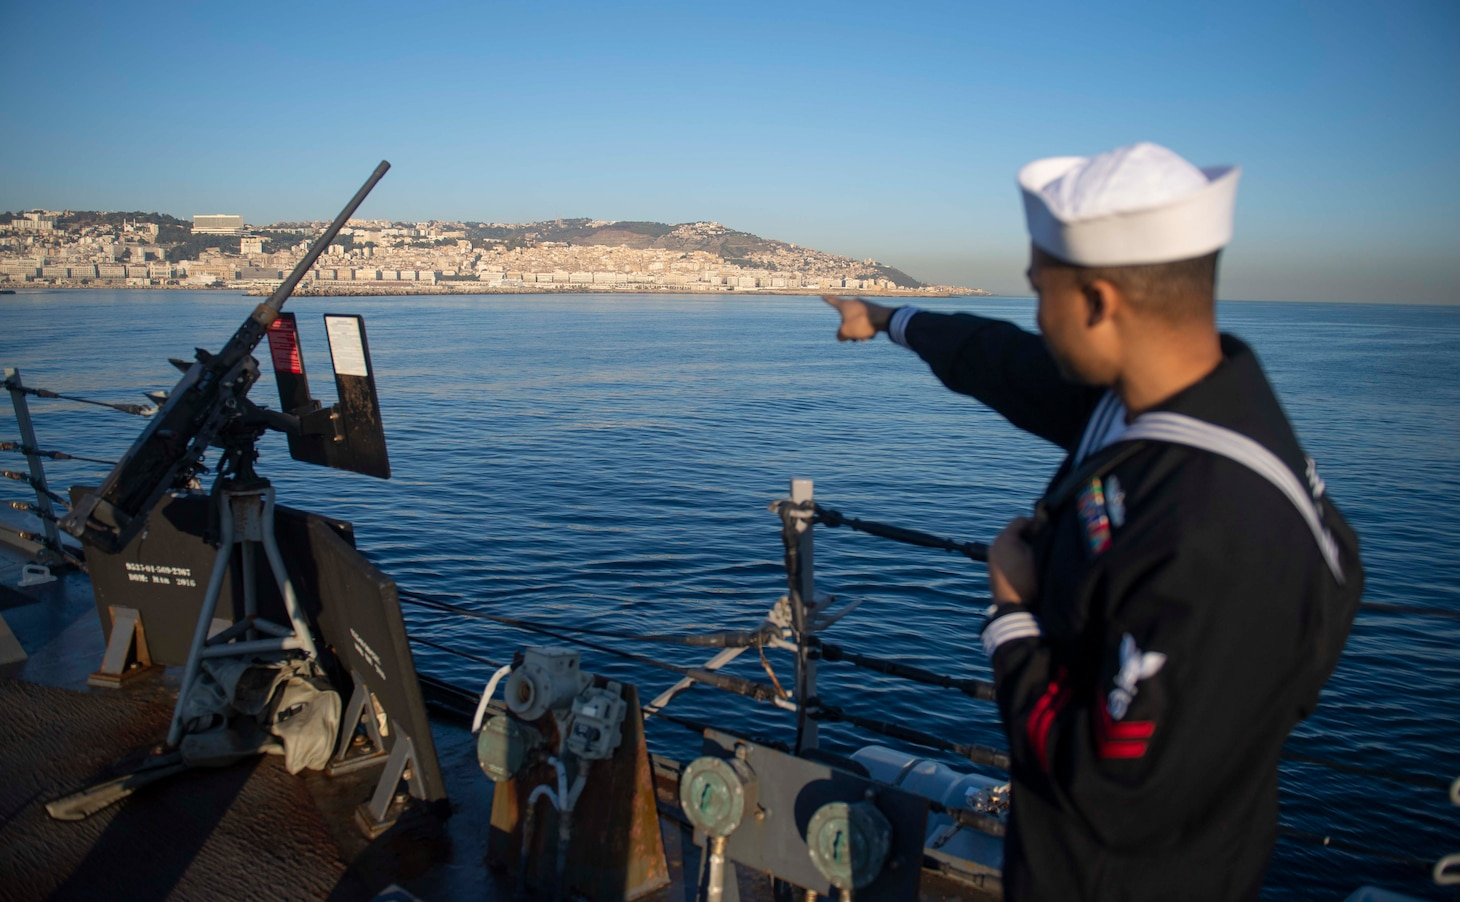 201018-N-KY668-1116 MEDITERRANEAN SEA (Oct. 18, 2020) Gas Turbine Systems Technician (Mechanical) 2nd Class Alva Johnson points to the skyline from the missile deck aboard Arleigh Burke-class guided-missile destroyer USS Roosevelt (DDG 80) as the ship pulls into Algiers, Algeria for a scheduled brief stop for fuel, Oct. 18, 2020. Roosevelt, forward-deployed to Rota, Spain, is on its first patrol in the U.S. Sixth Fleet area of operations in support of regional allies and partners and U.S. national security interests in Europe and Africa. (U.S. Navy photo by Mass Communication Specialist Seaman Austin G. Collins/Released)